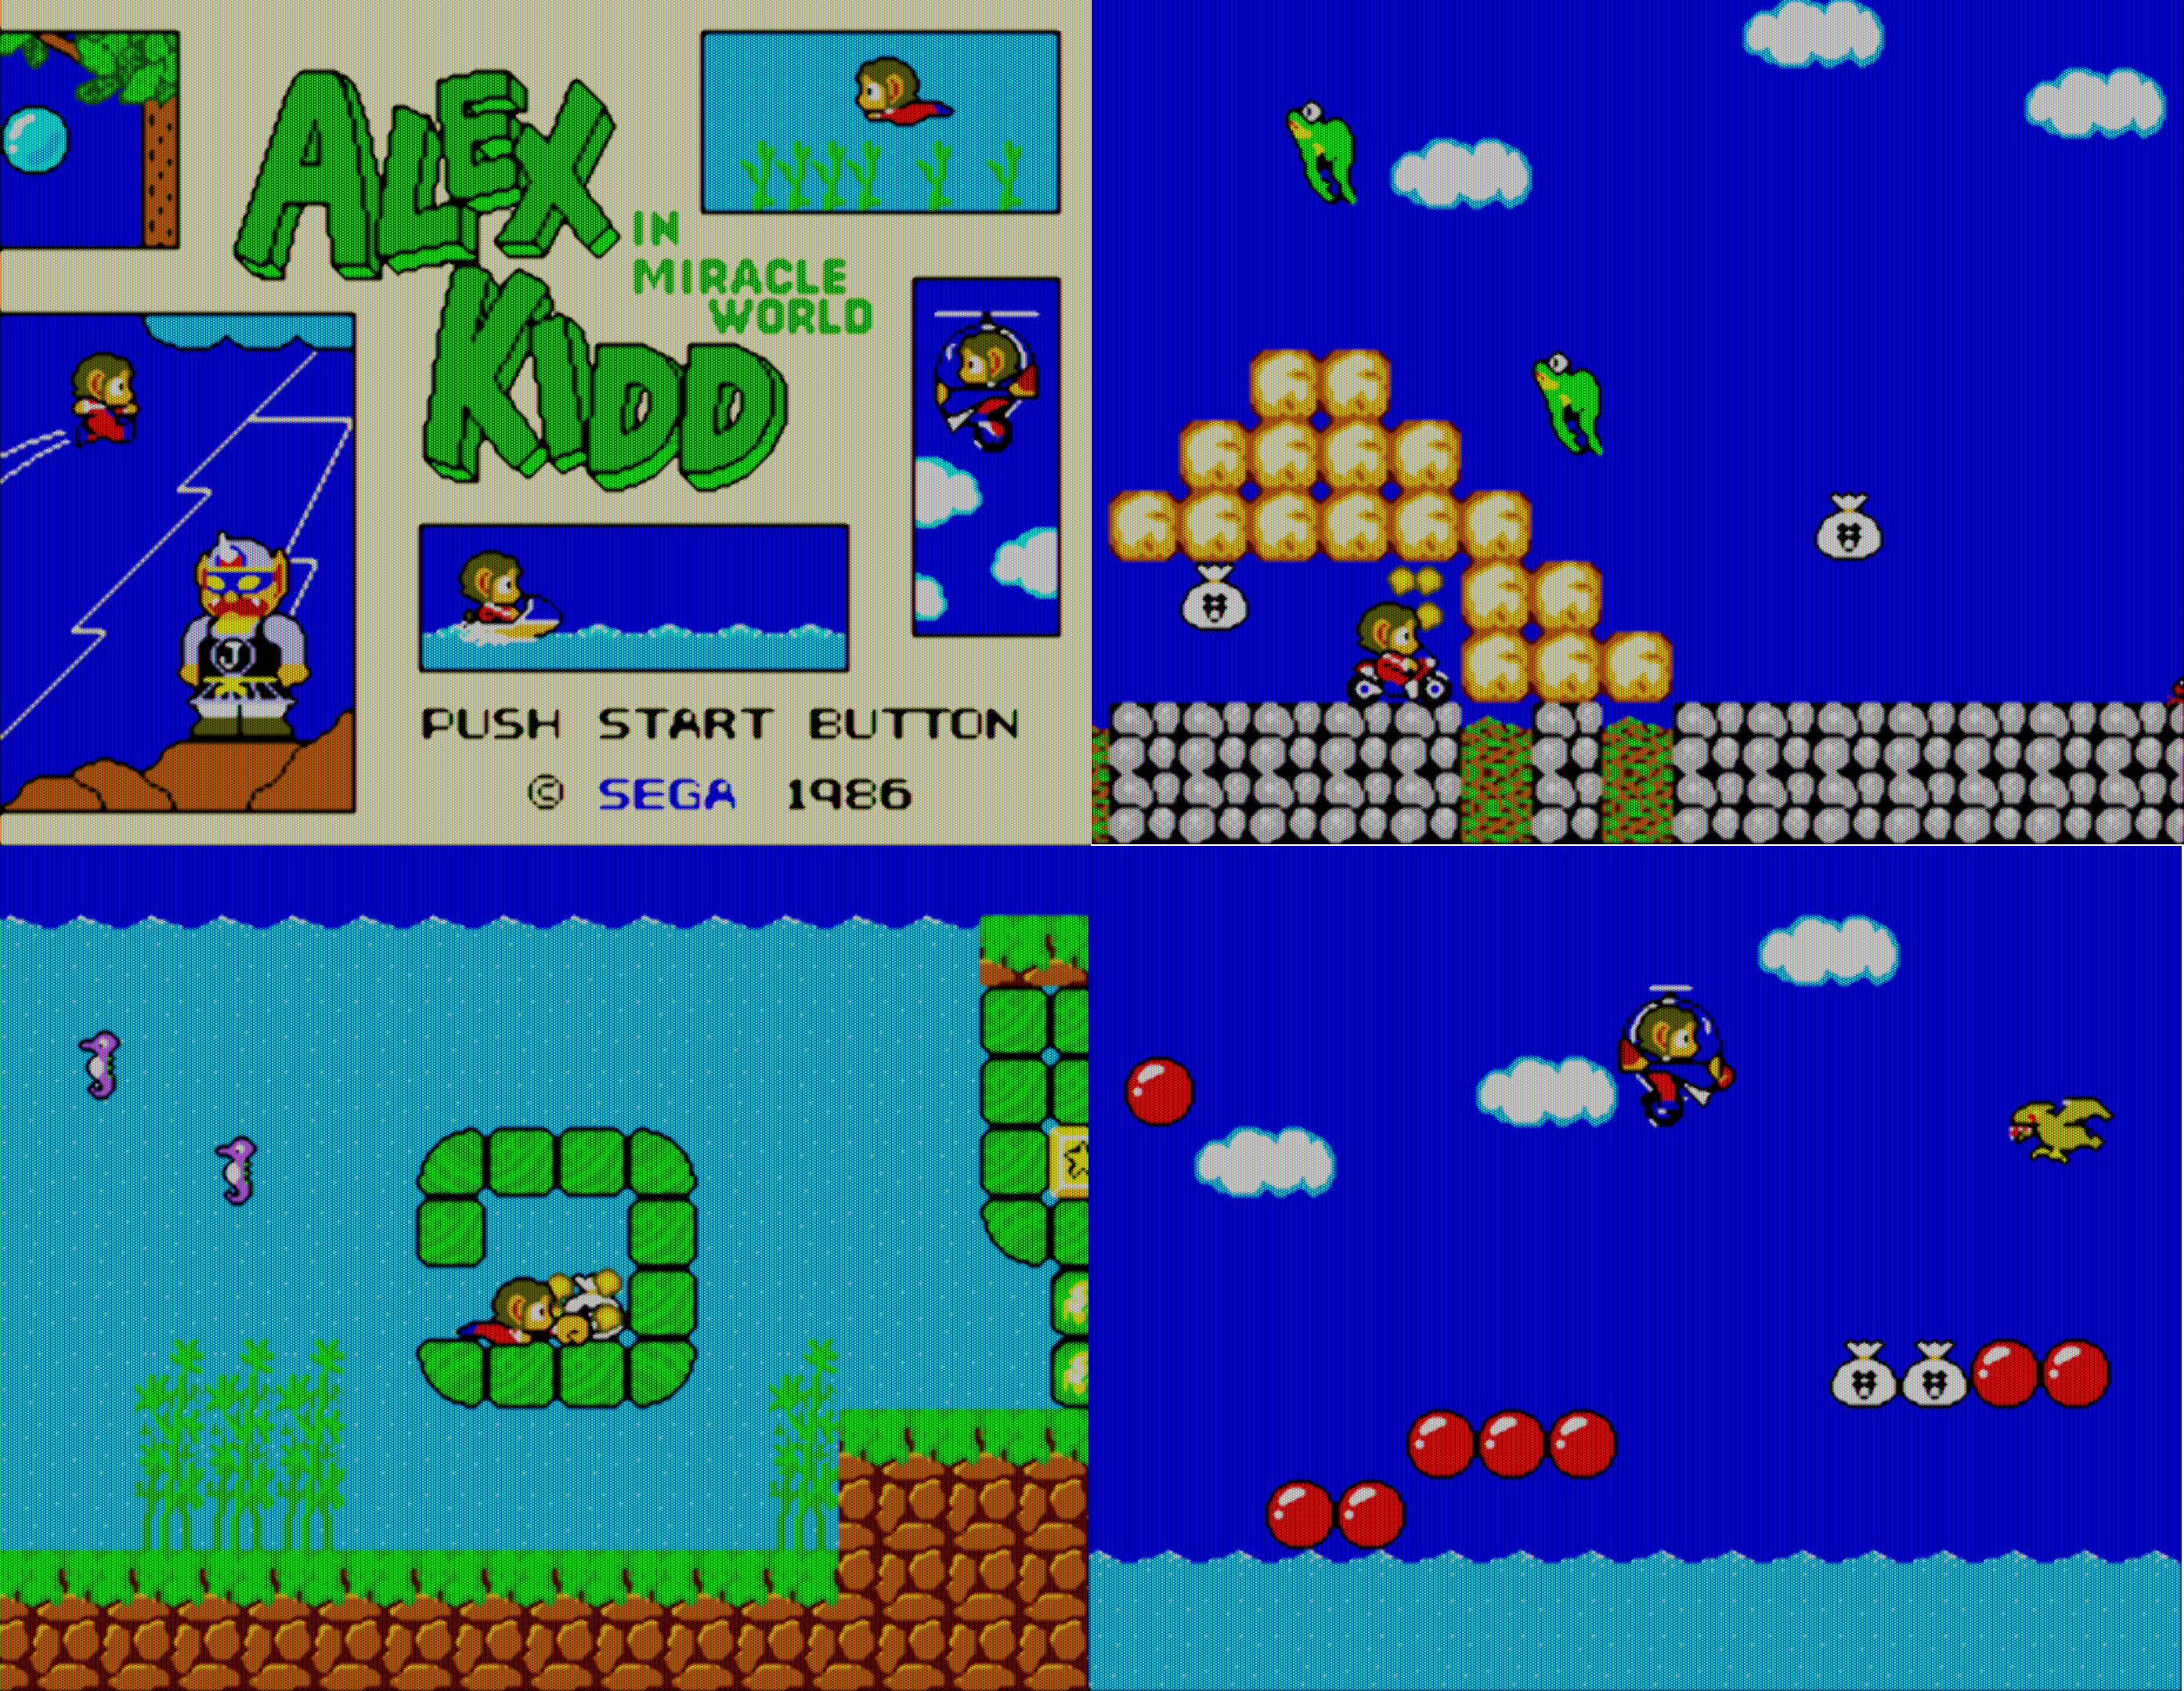 ODROID Magazine - Alex Kidd in Miracle World on the ODROID with 2xsal-level2-crt shader